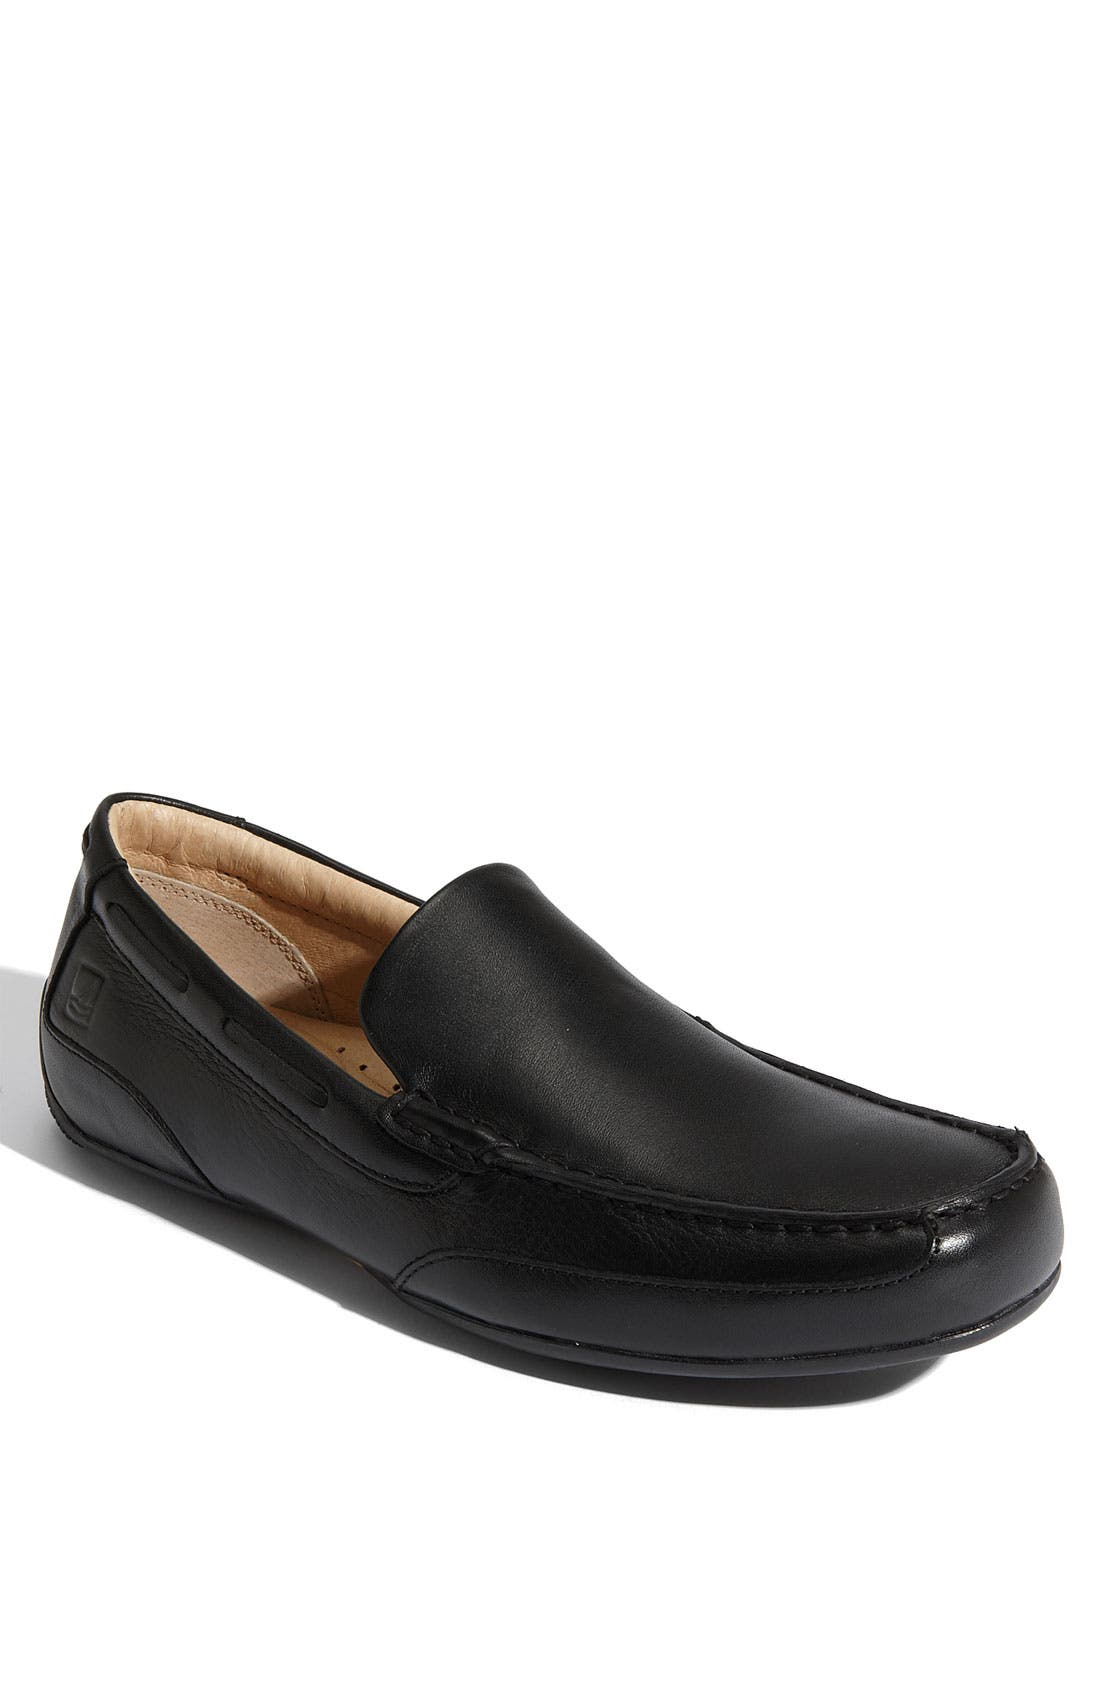 Top-Sider<sup>®</sup> 'Navigator Venetian' Driving Shoe,                         Main,                         color, 001